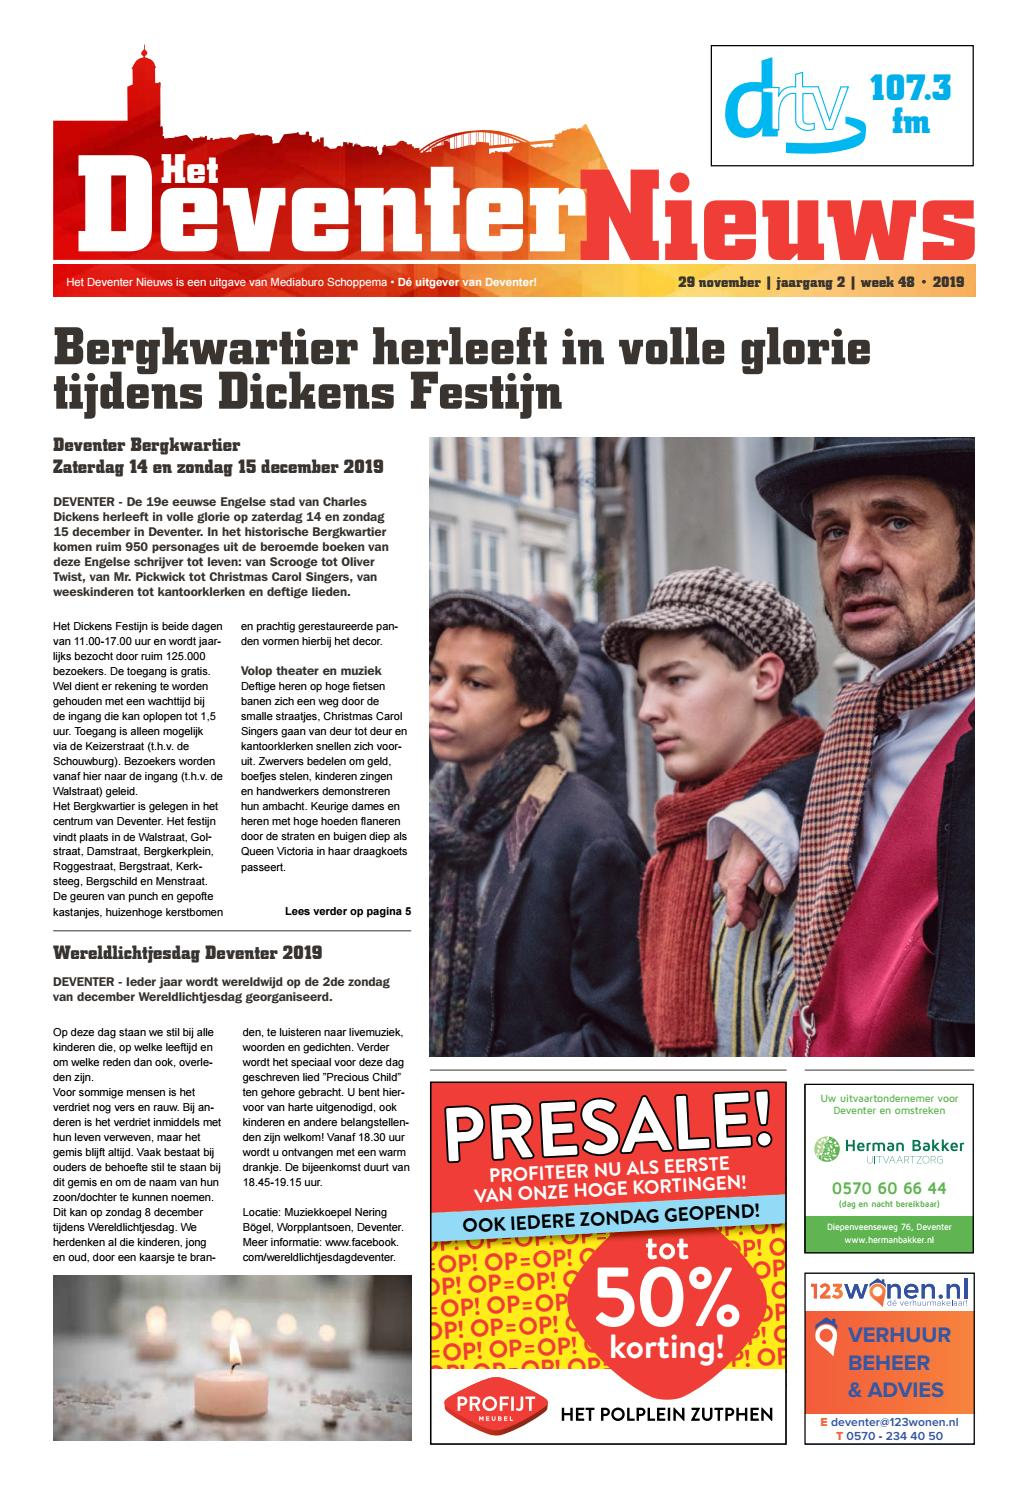 Deventer Nieuws Week 48 2019 By Mediaburo Schoppema Issuu